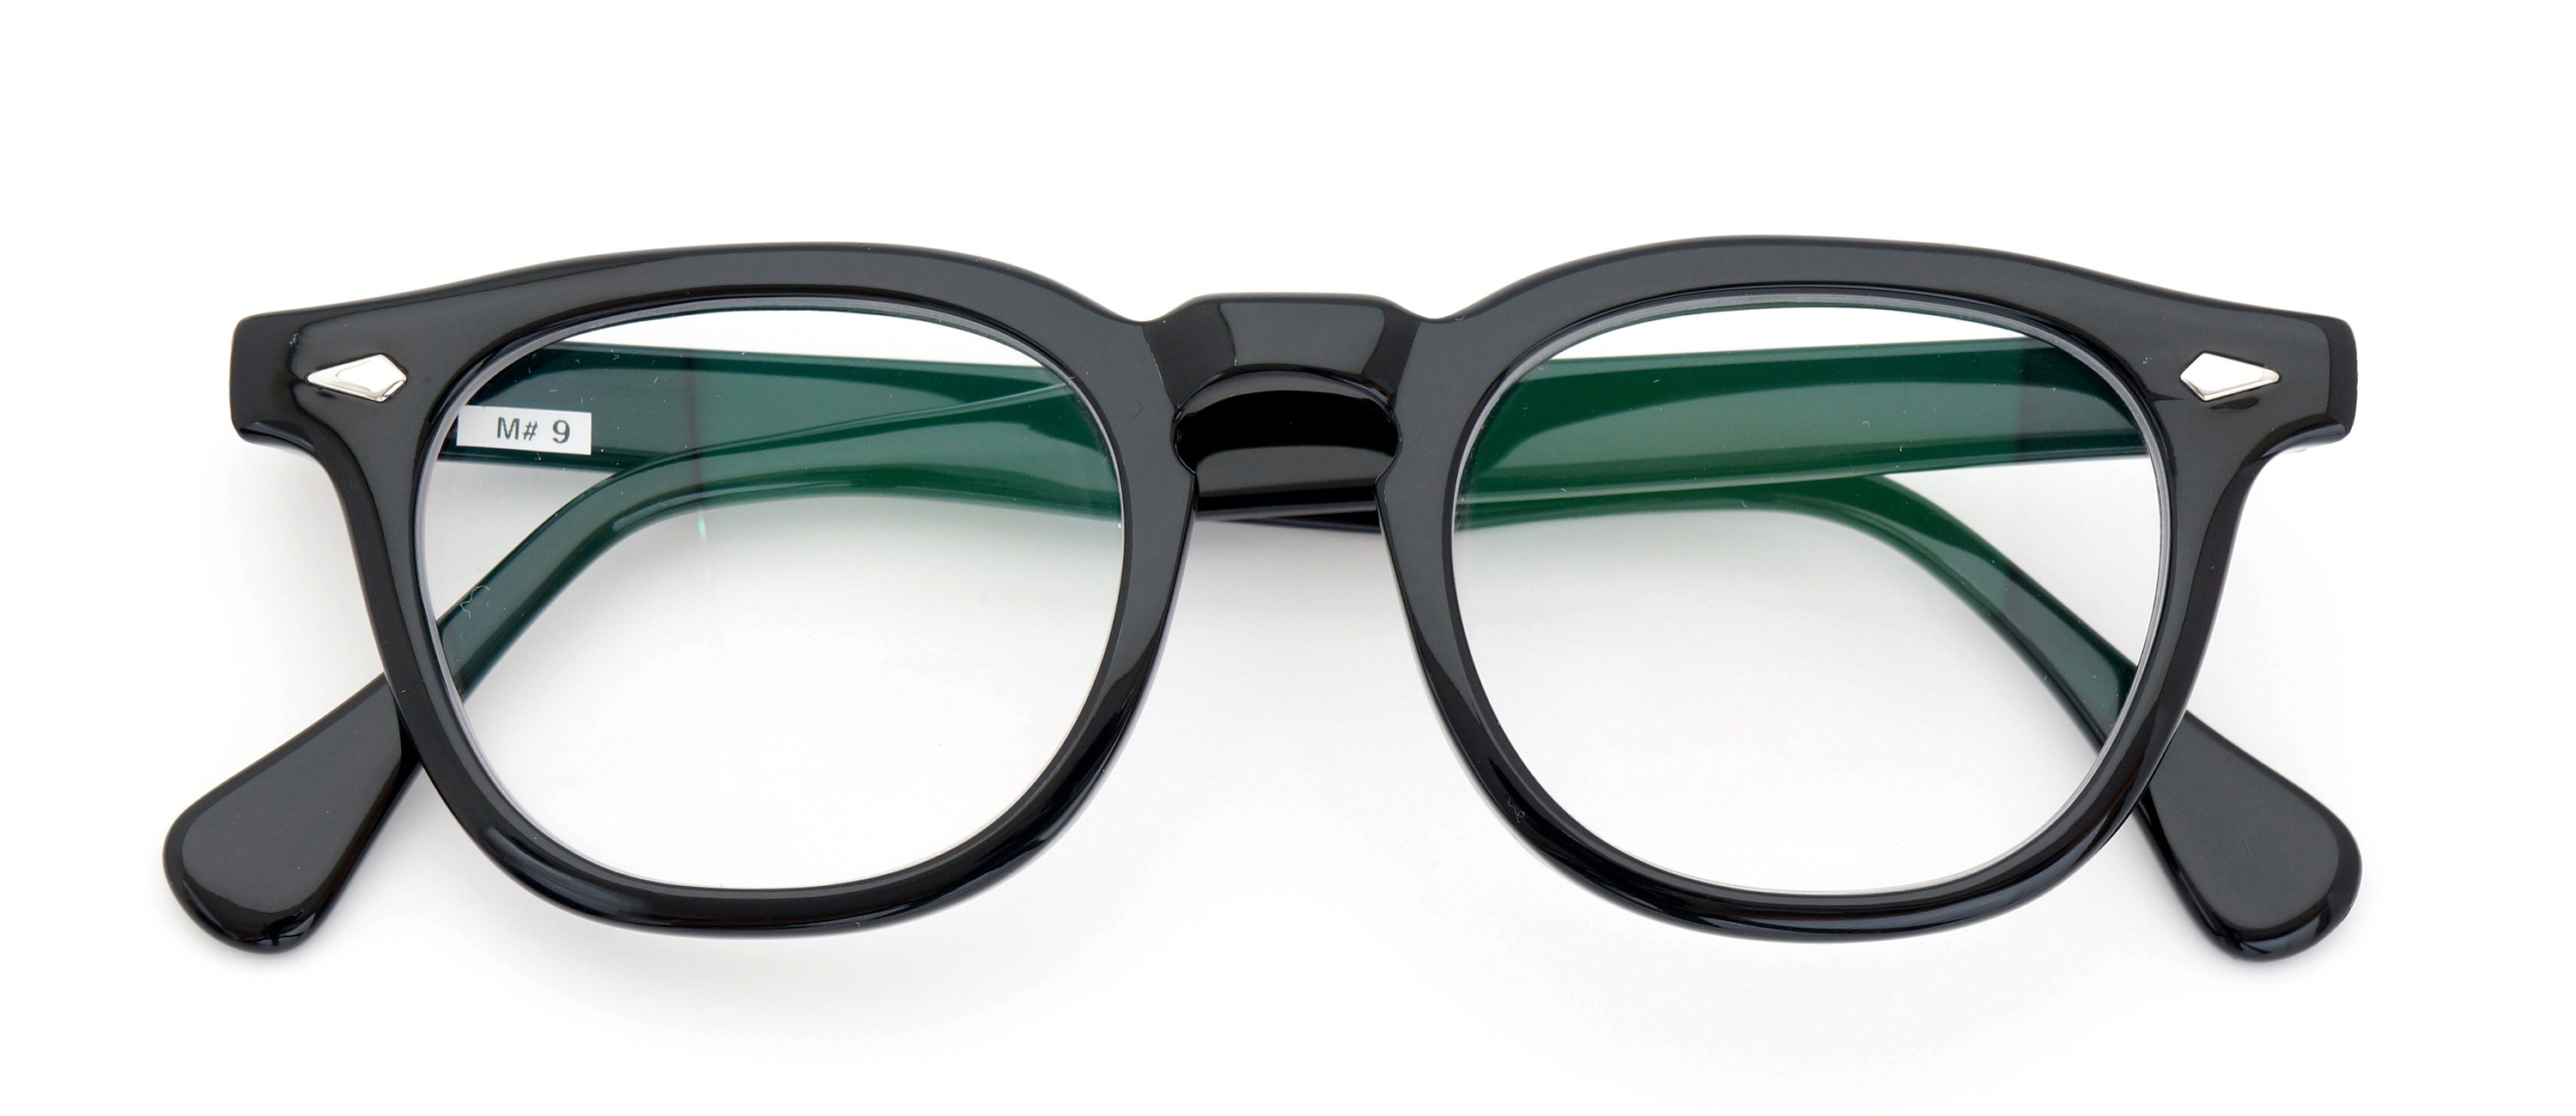 The Spectacle メガネ 1950s-70s TART OPTICAL ARNEL(FRAME USA) BLACK 48-22 イメージ2